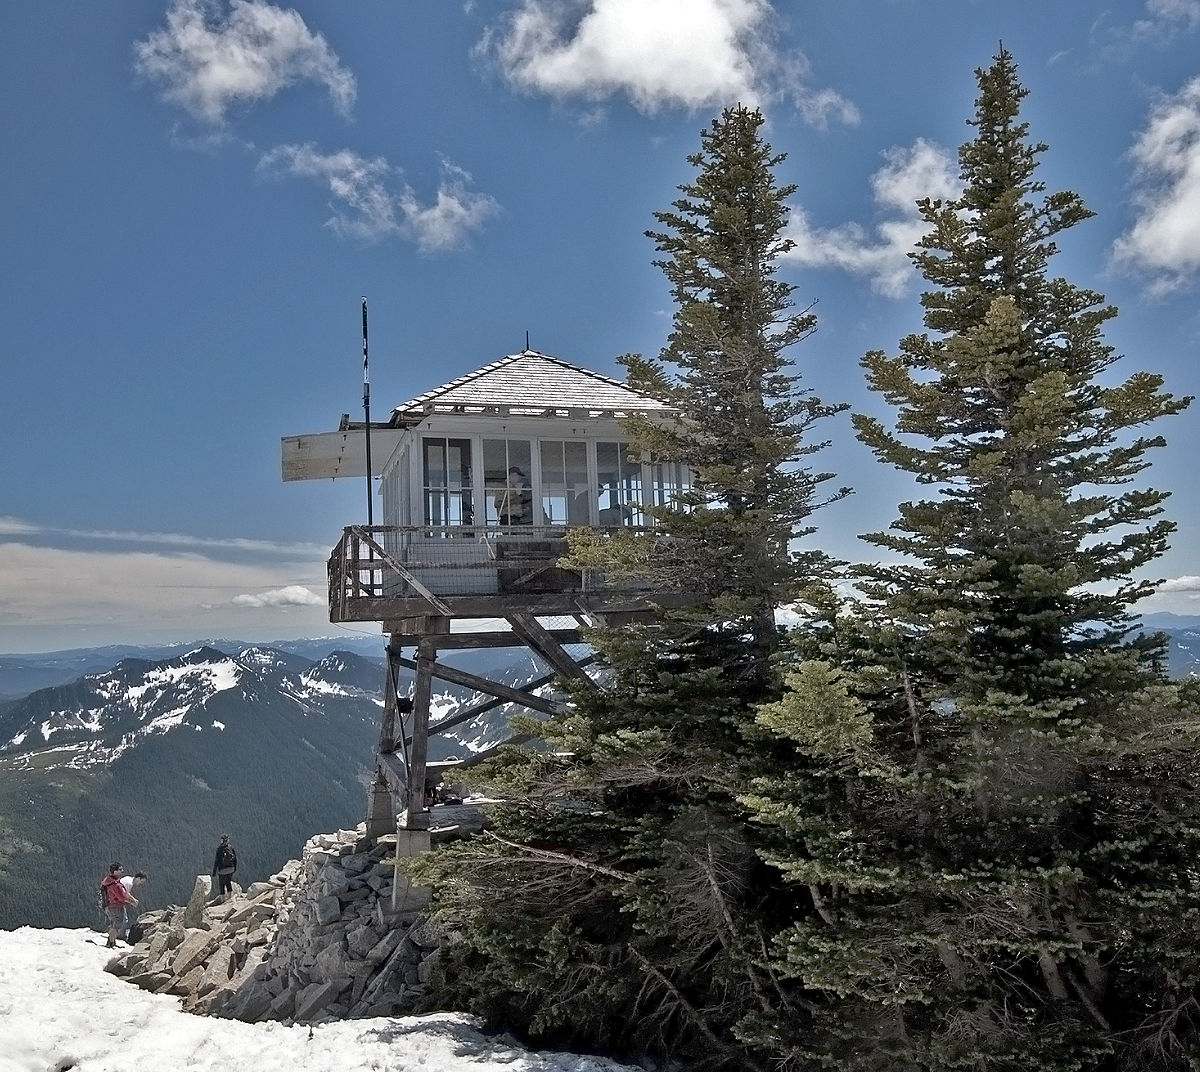 forest fire lookout association wikipedia